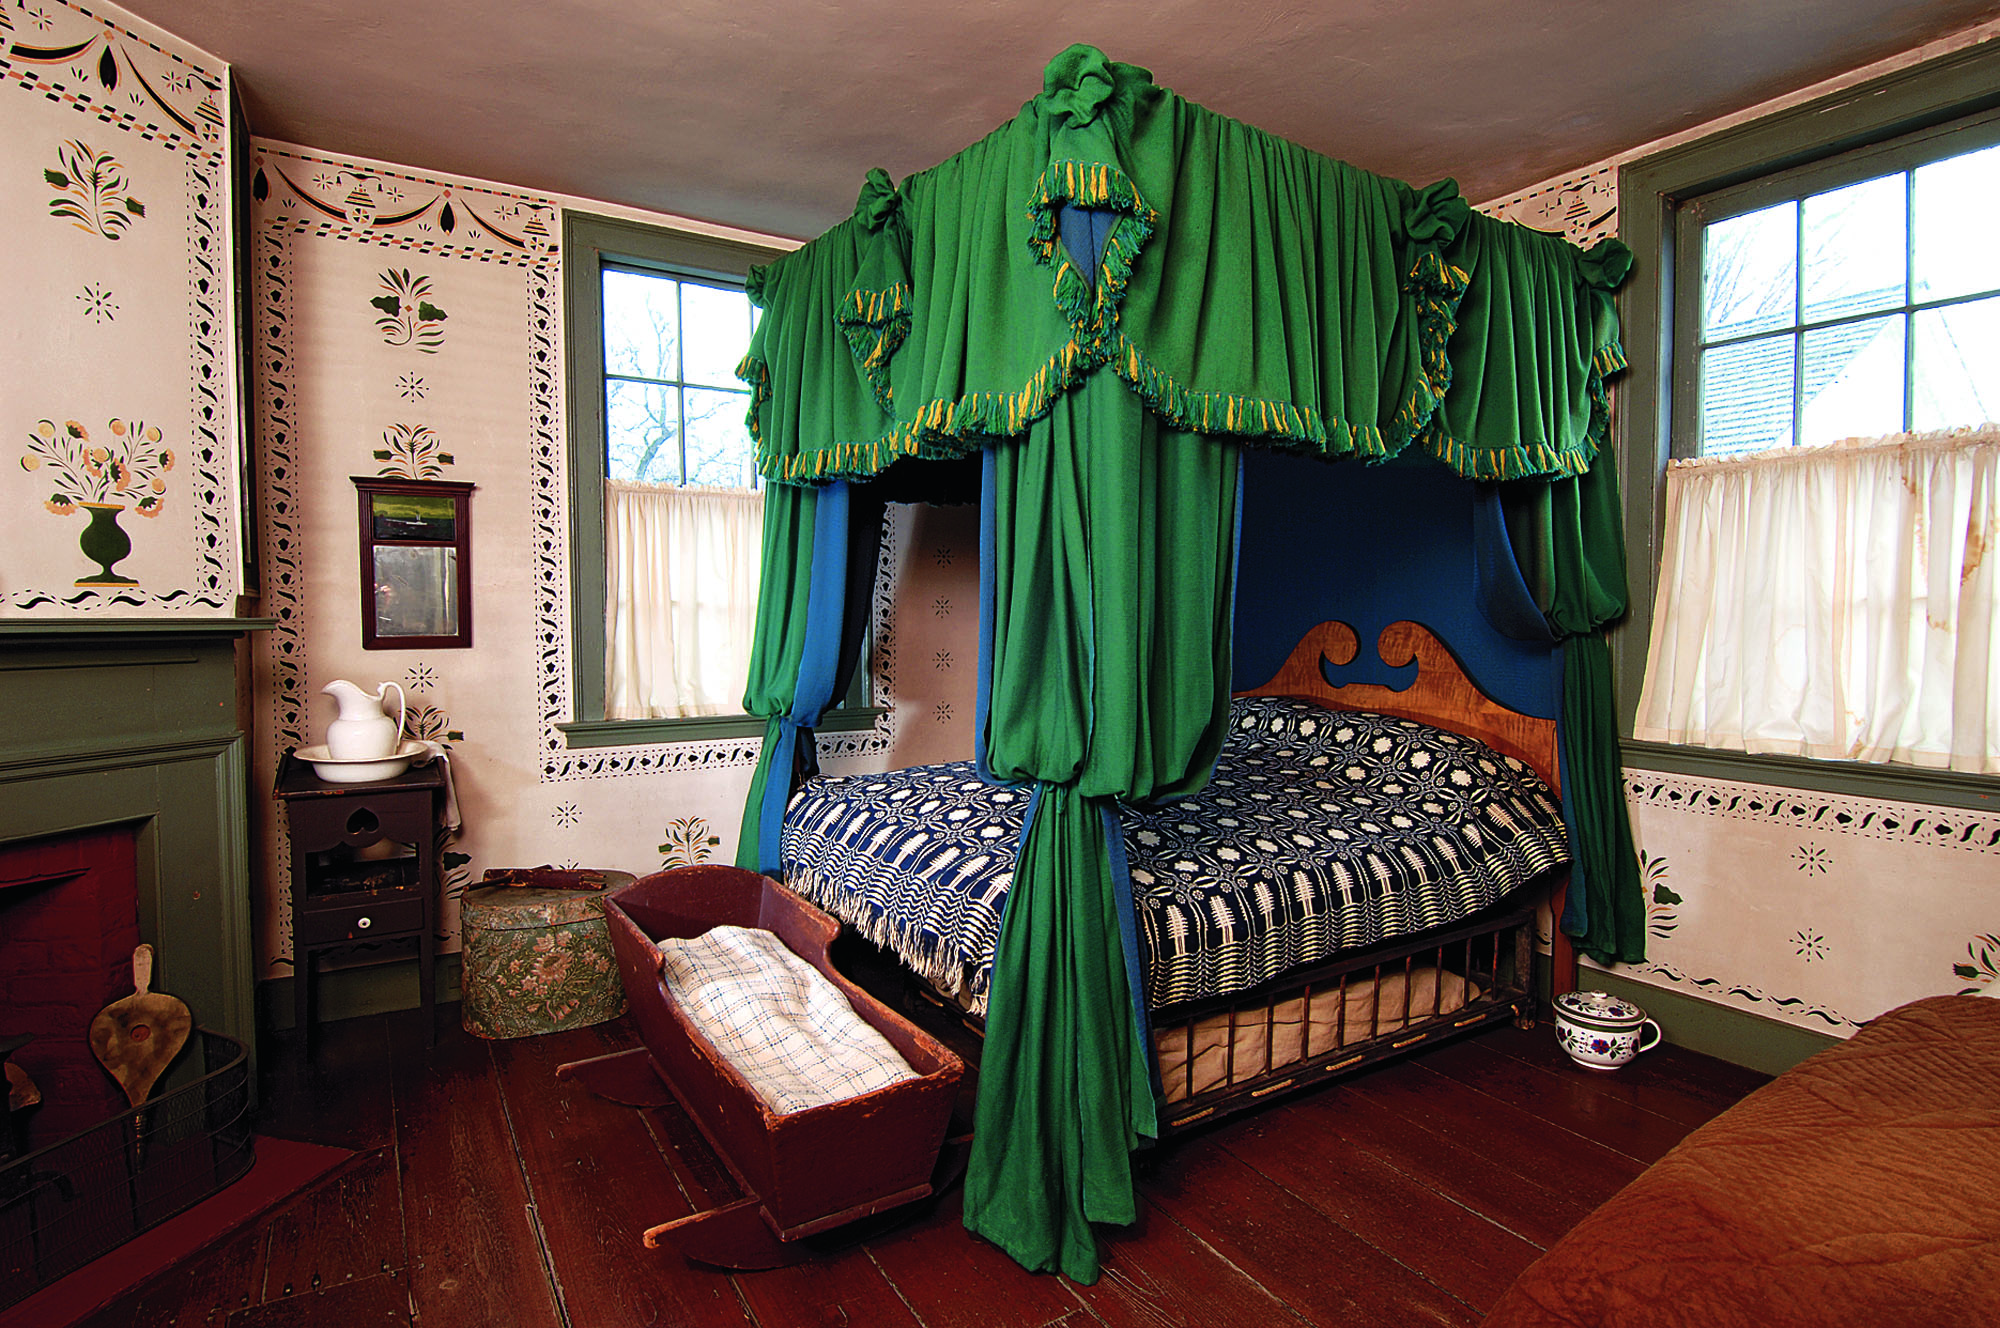 In a lavish bedroom of the early 1800s at the Farmers' Museum's Bump Tavern, wall stenciling was copied from the original.